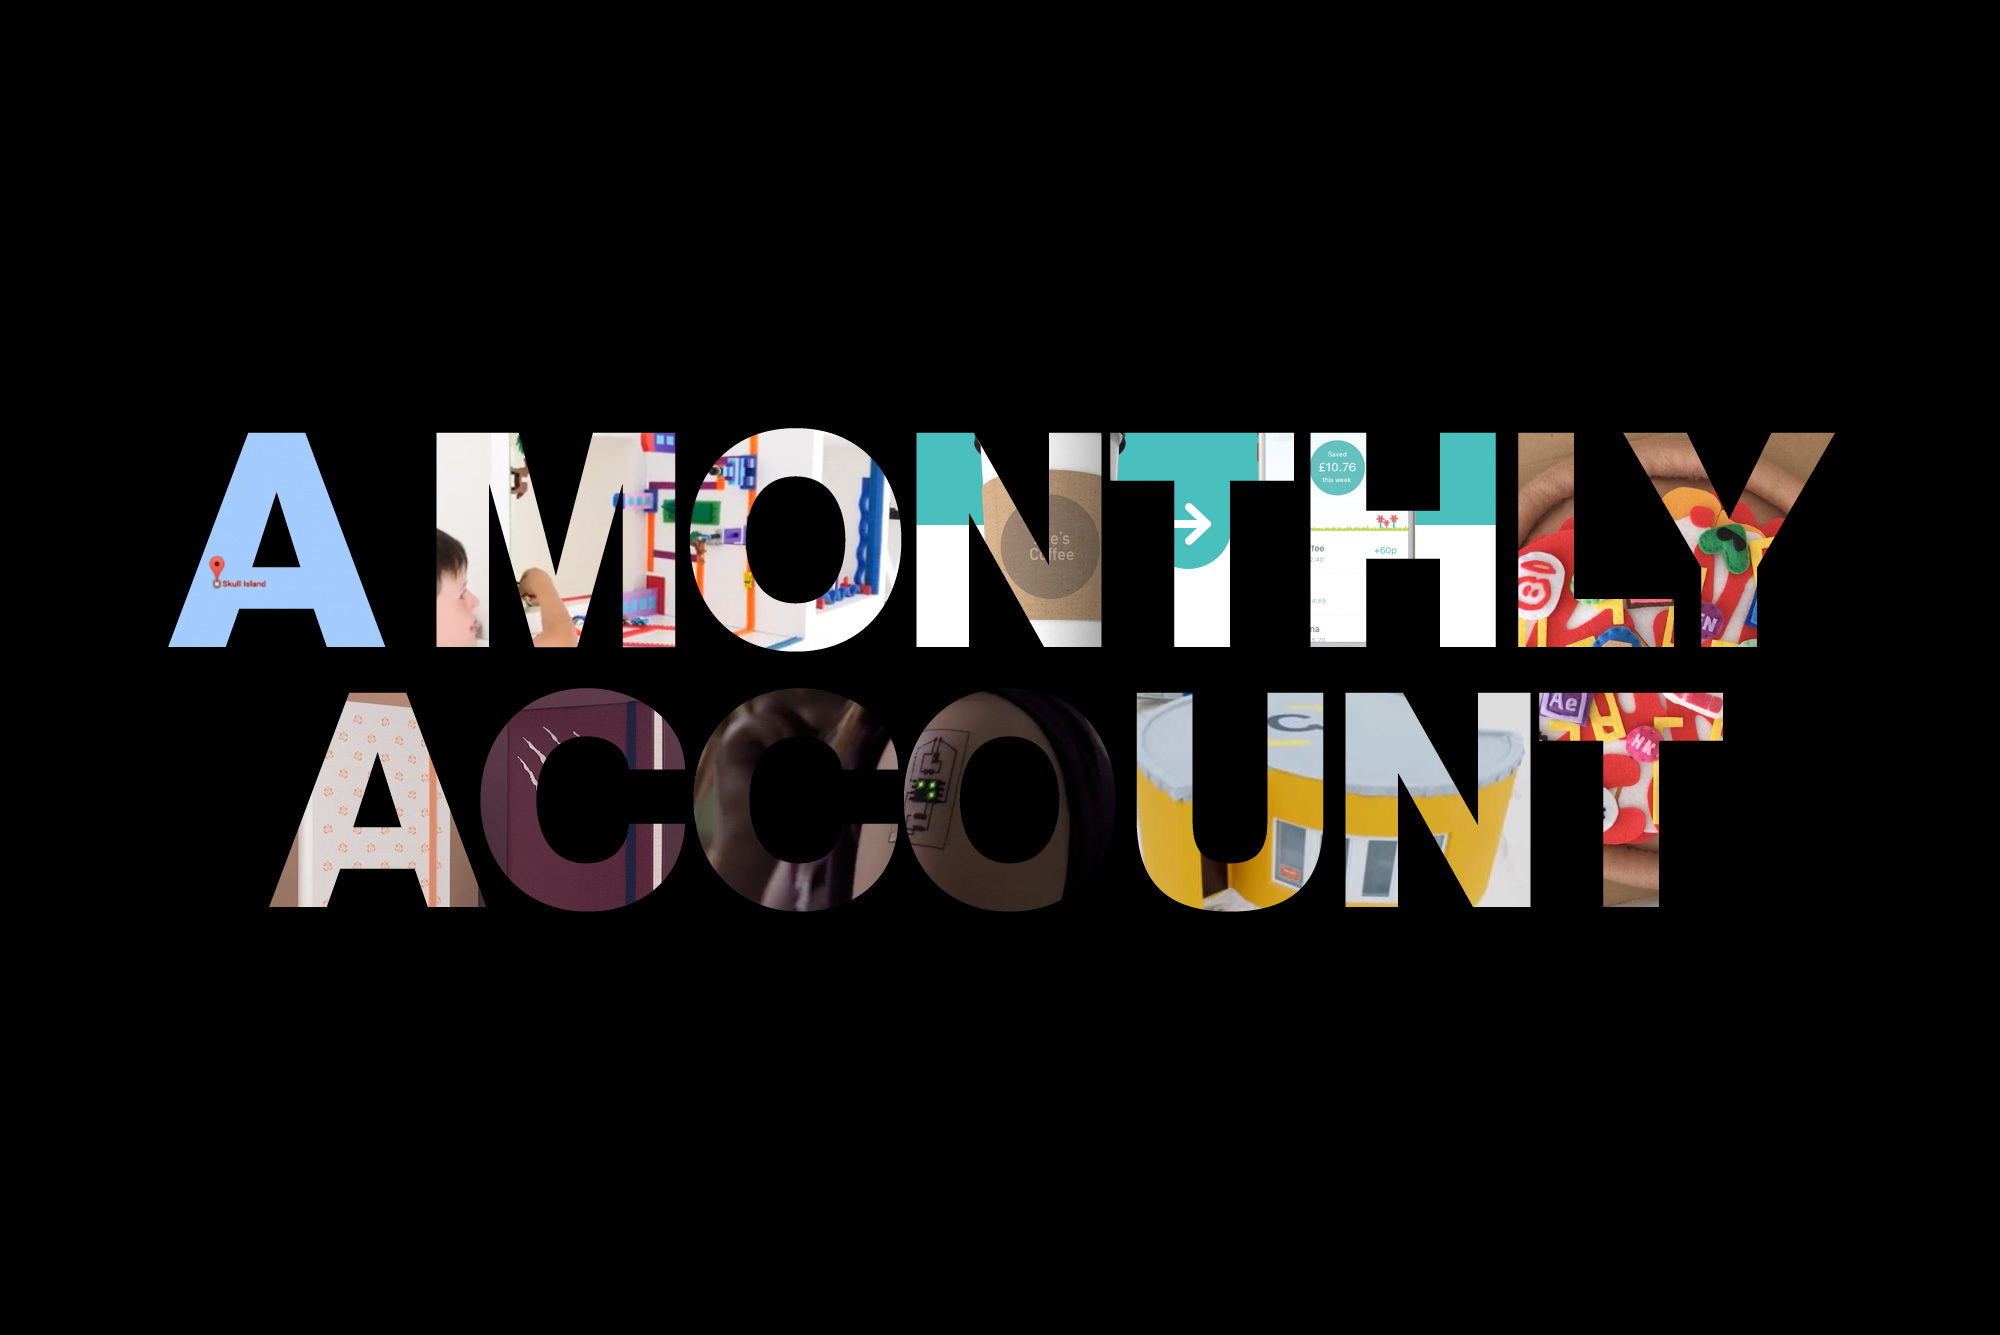 A Monthly Account image with various images inside the lettering